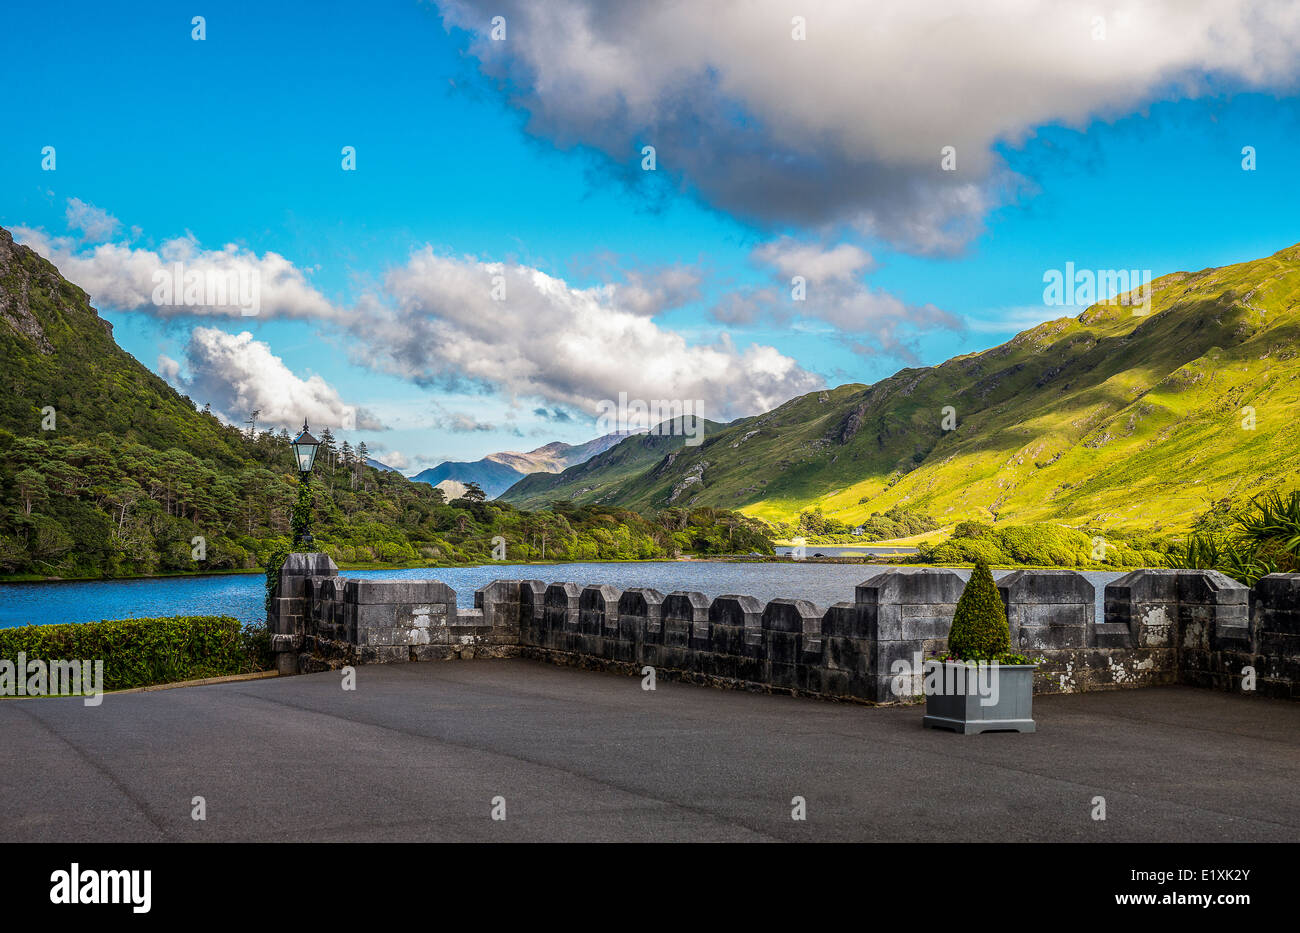 Ireland, Galway county, Connemara area, the Pollacappul lake seen from the Kylemore abbey - Stock Image